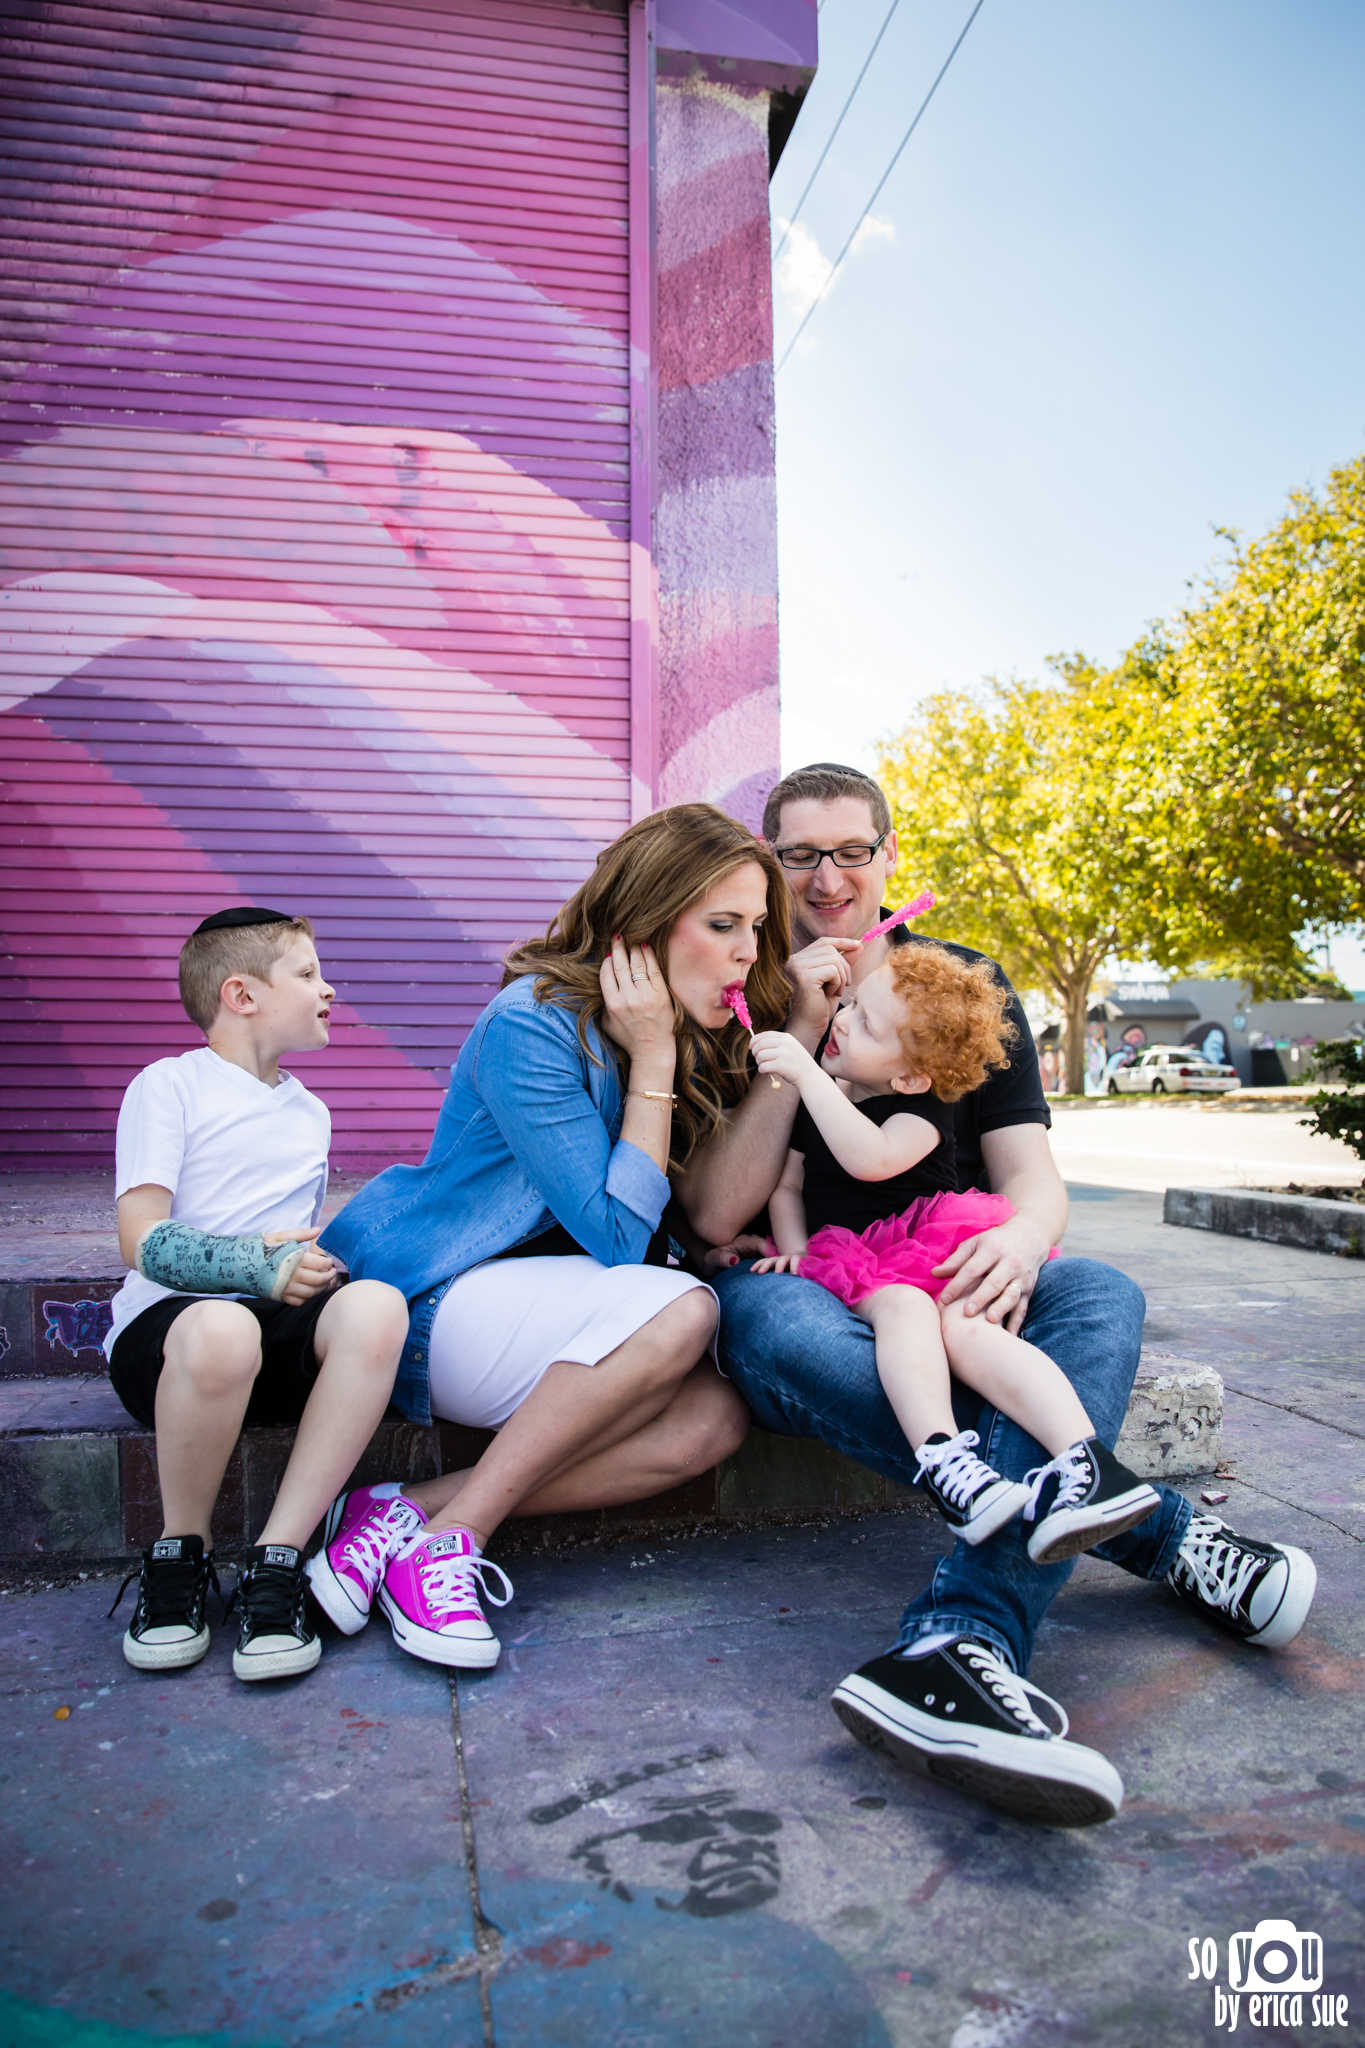 wynwood-family-photography-so-you-by-erica-sue-ft-lauderdale-davie-miami-fl-florida-2923.jpg